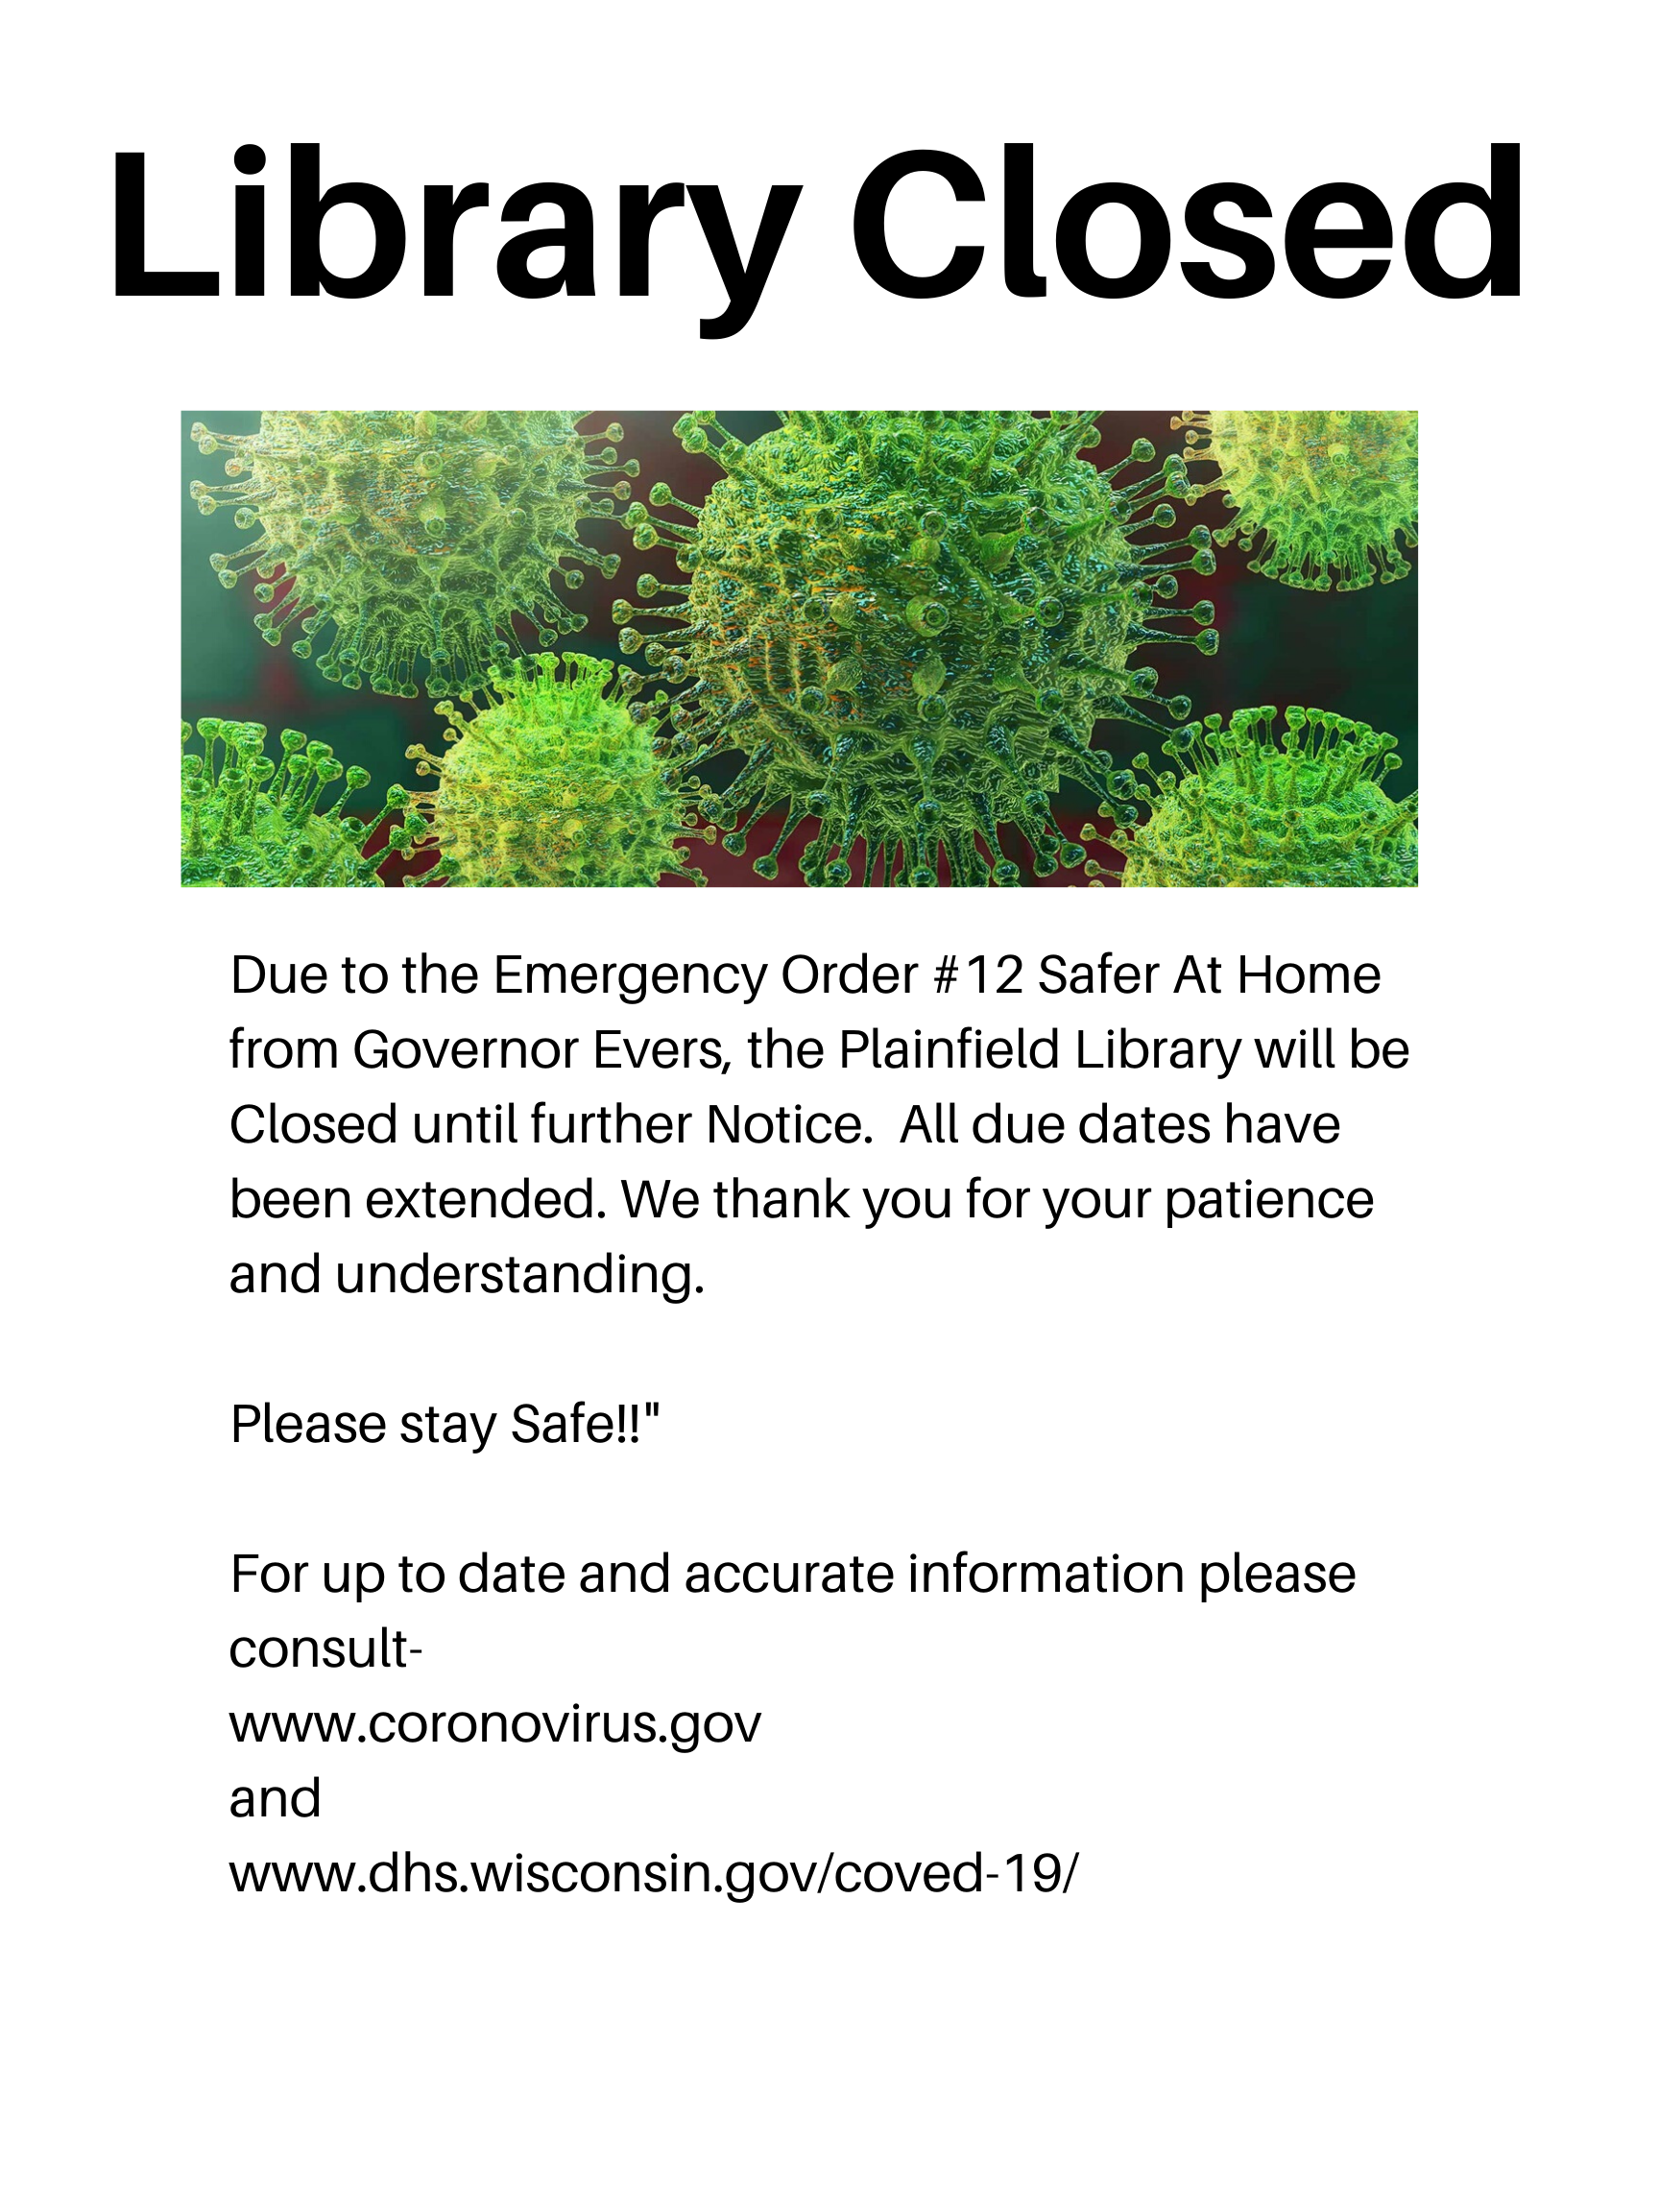 Library Closed -Safer At Home Order